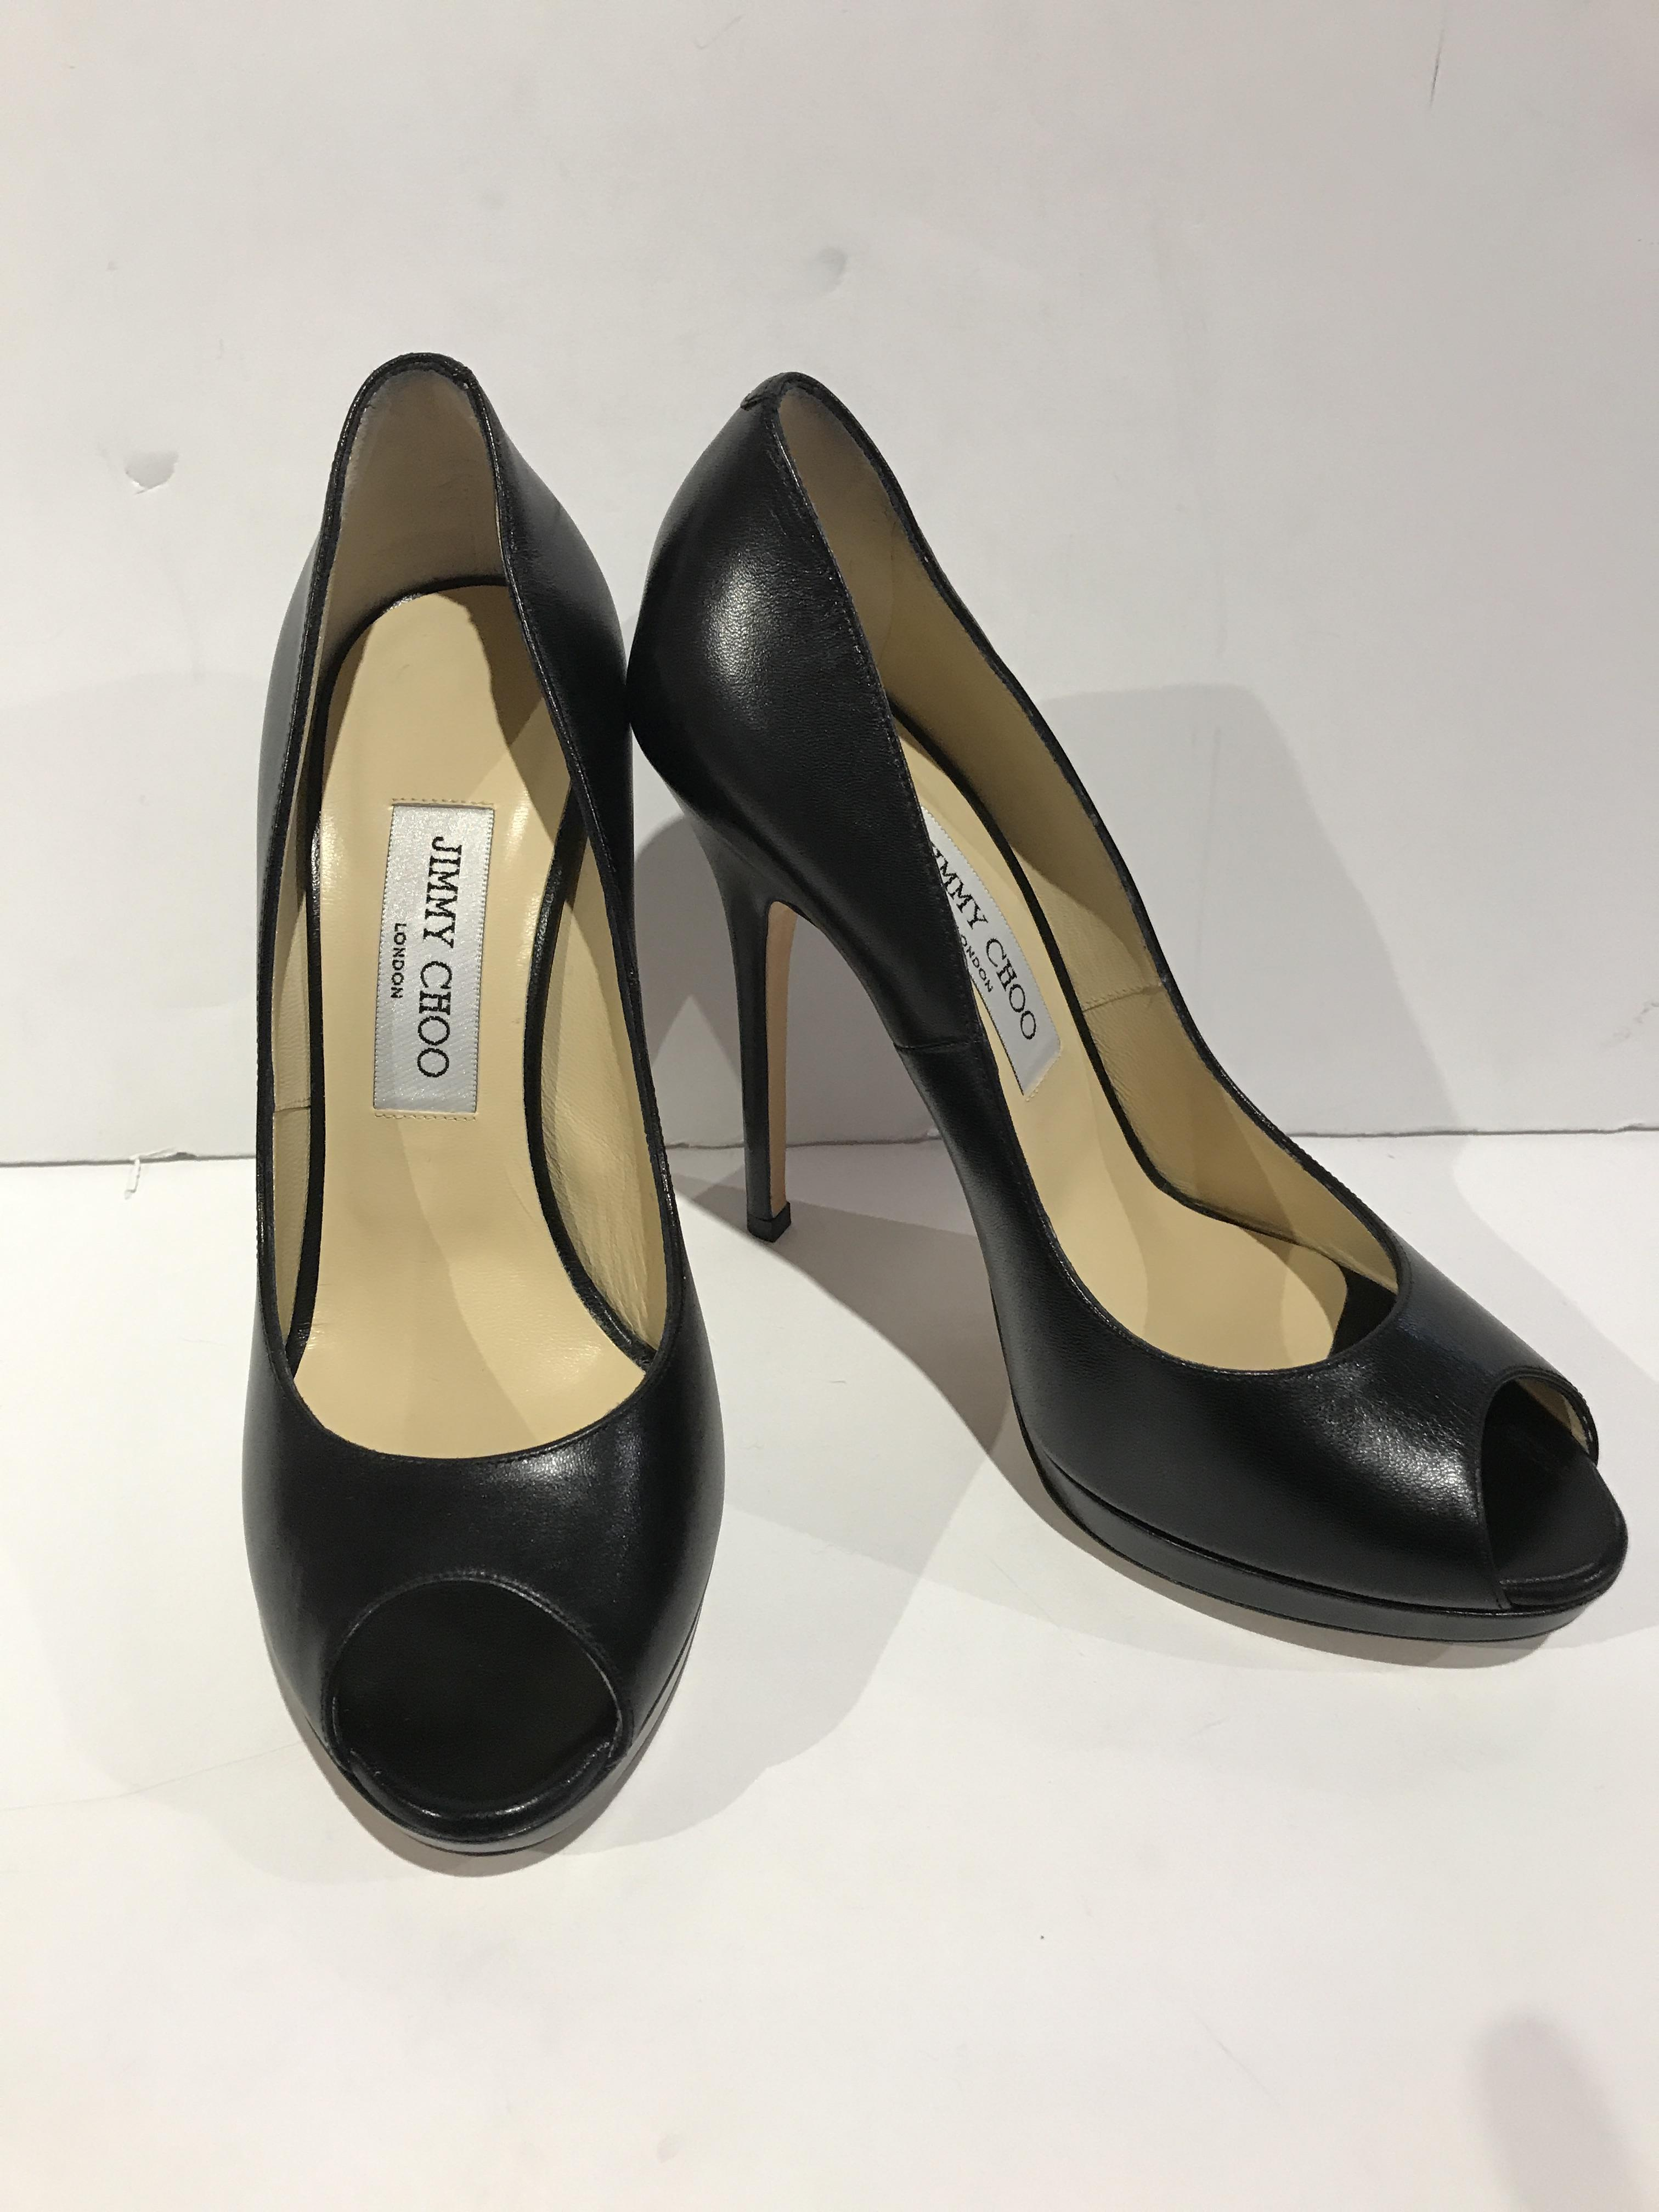 Jimmy Choo open Shoes Price: $197.99